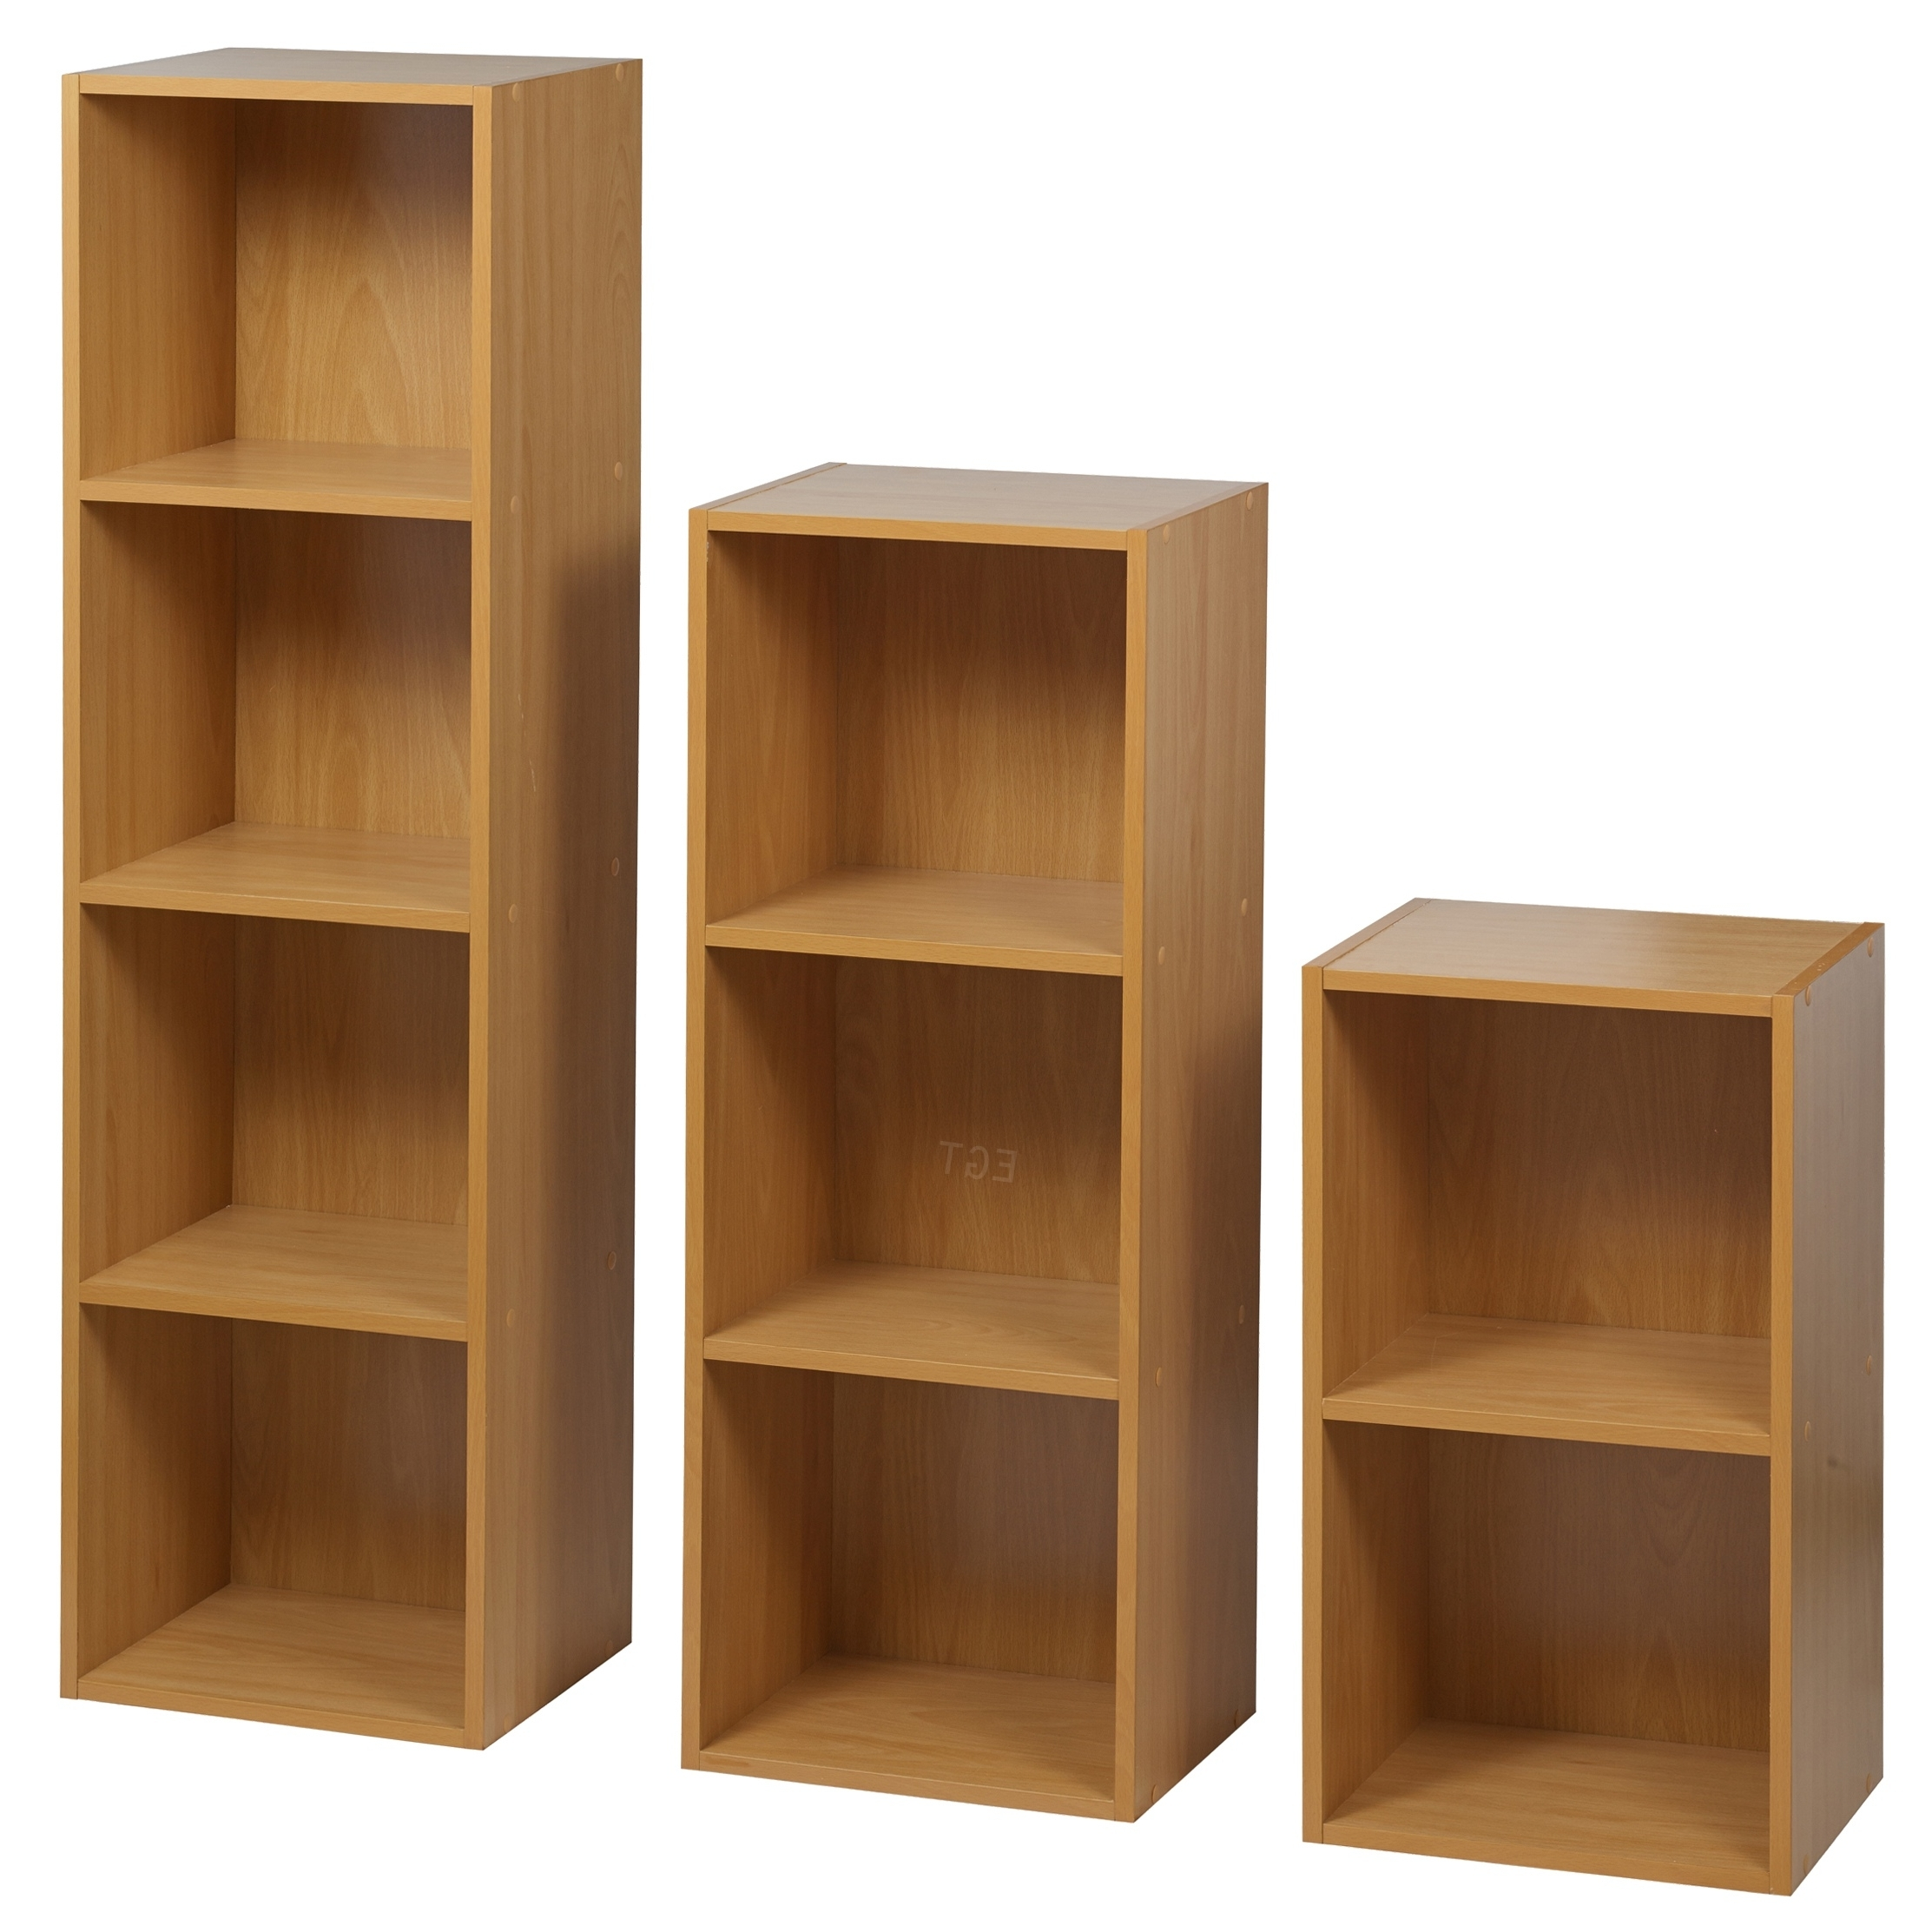 Most Current Wooden Bookcases For Furniture Home: Furniture Home Wooden Bookcase Bookshelf Awesome (View 8 of 15)